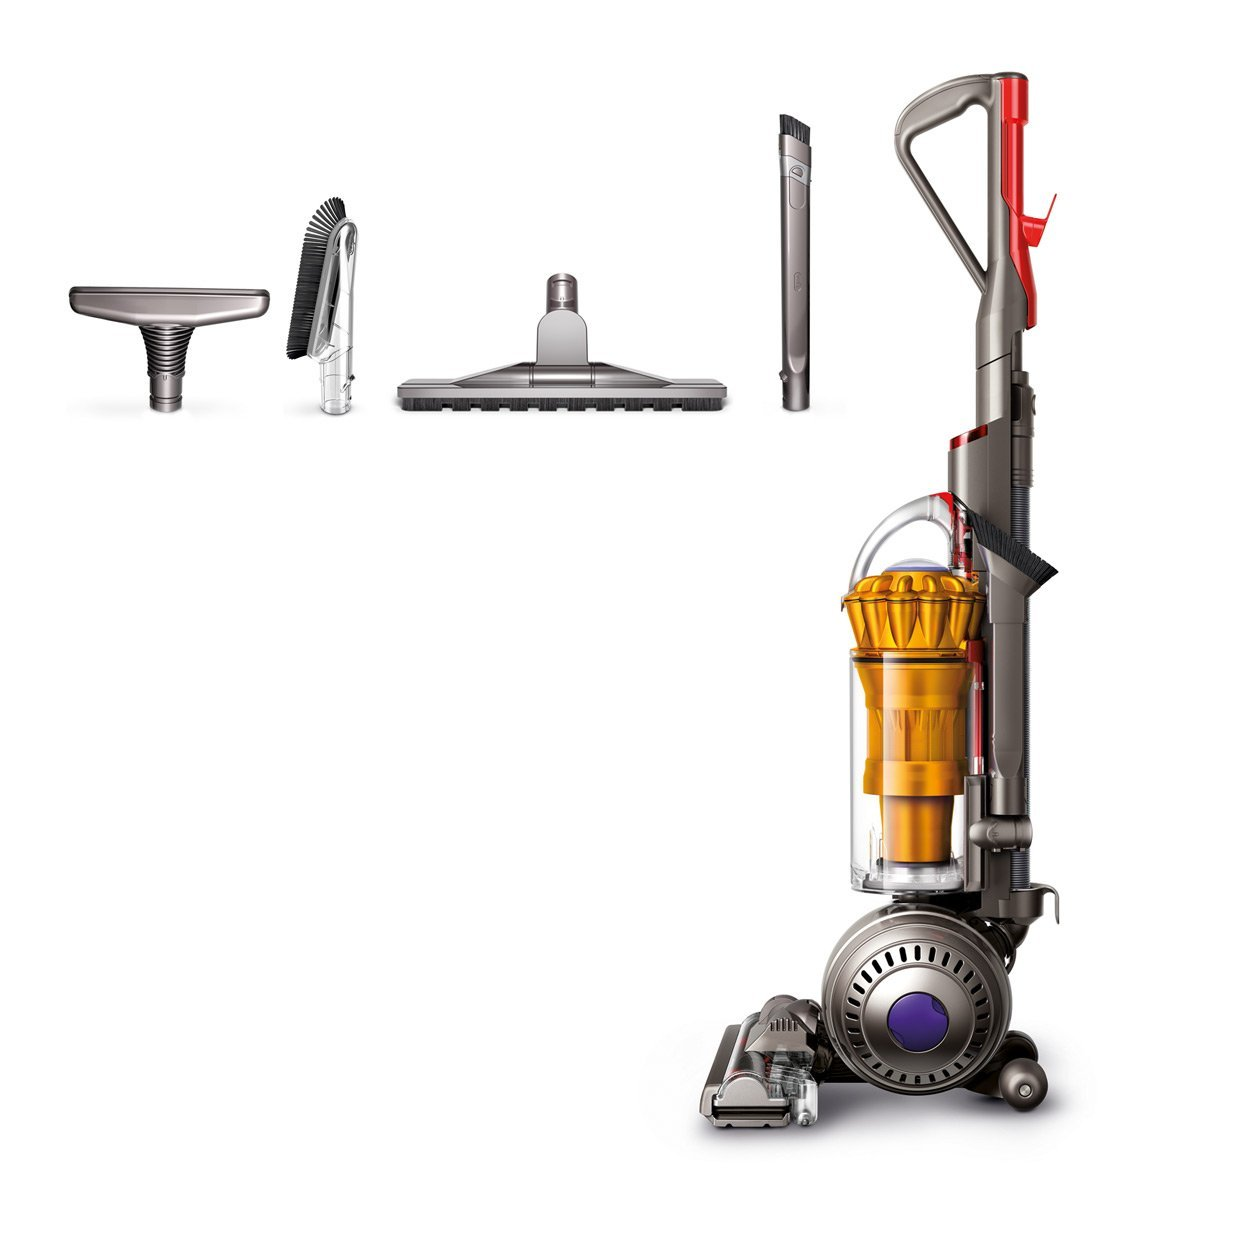 Hot 1 Day Deal On Dyson Vacuum Cleaner